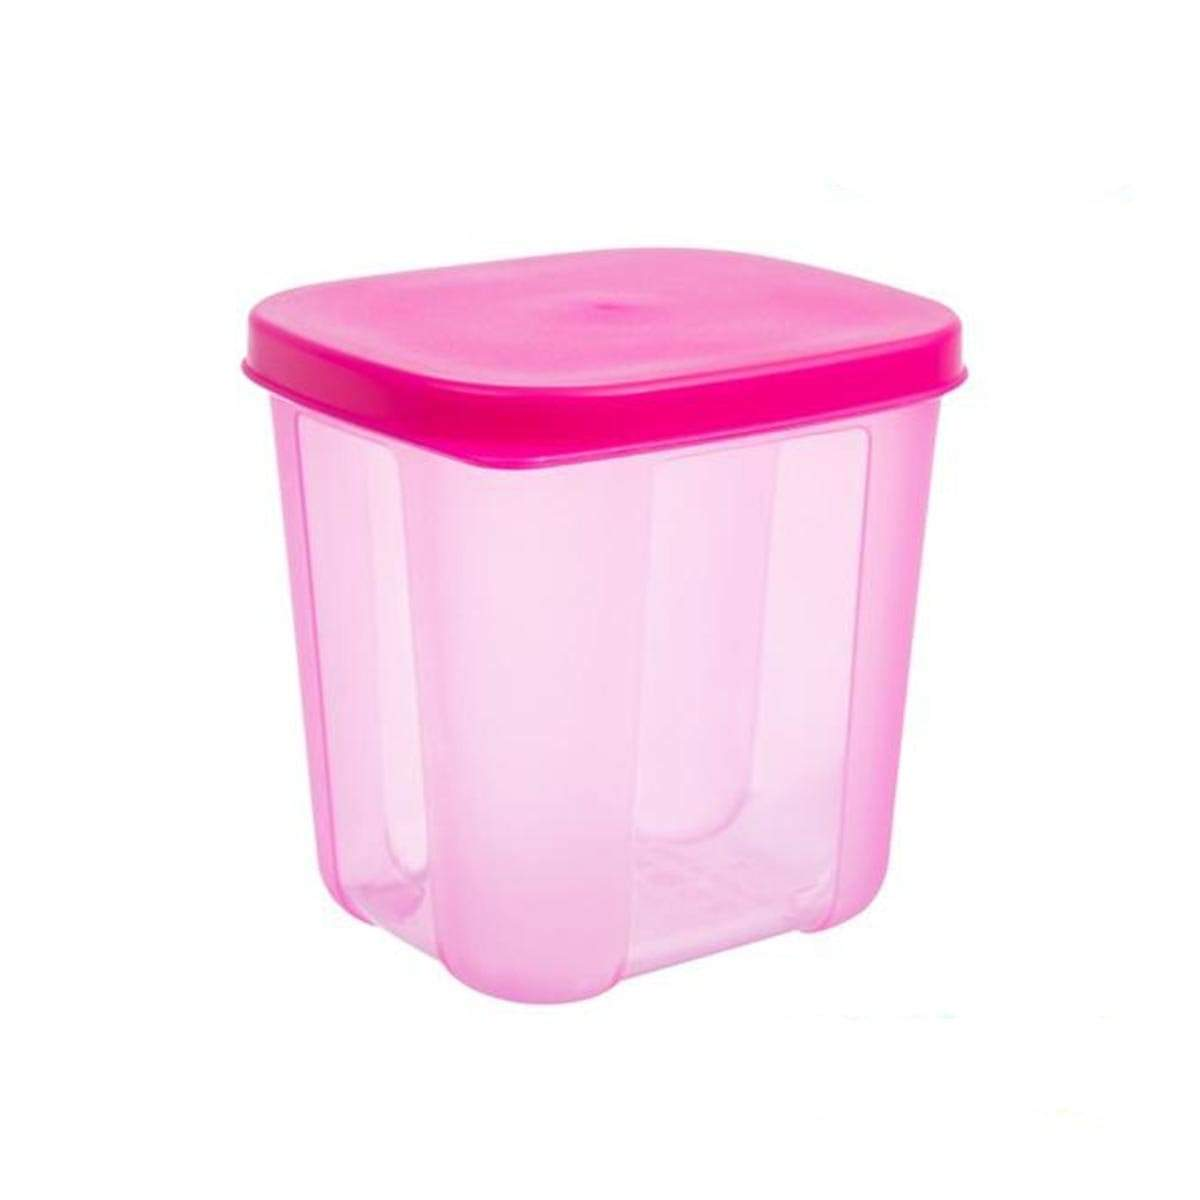 0123 Food Container 0.67L